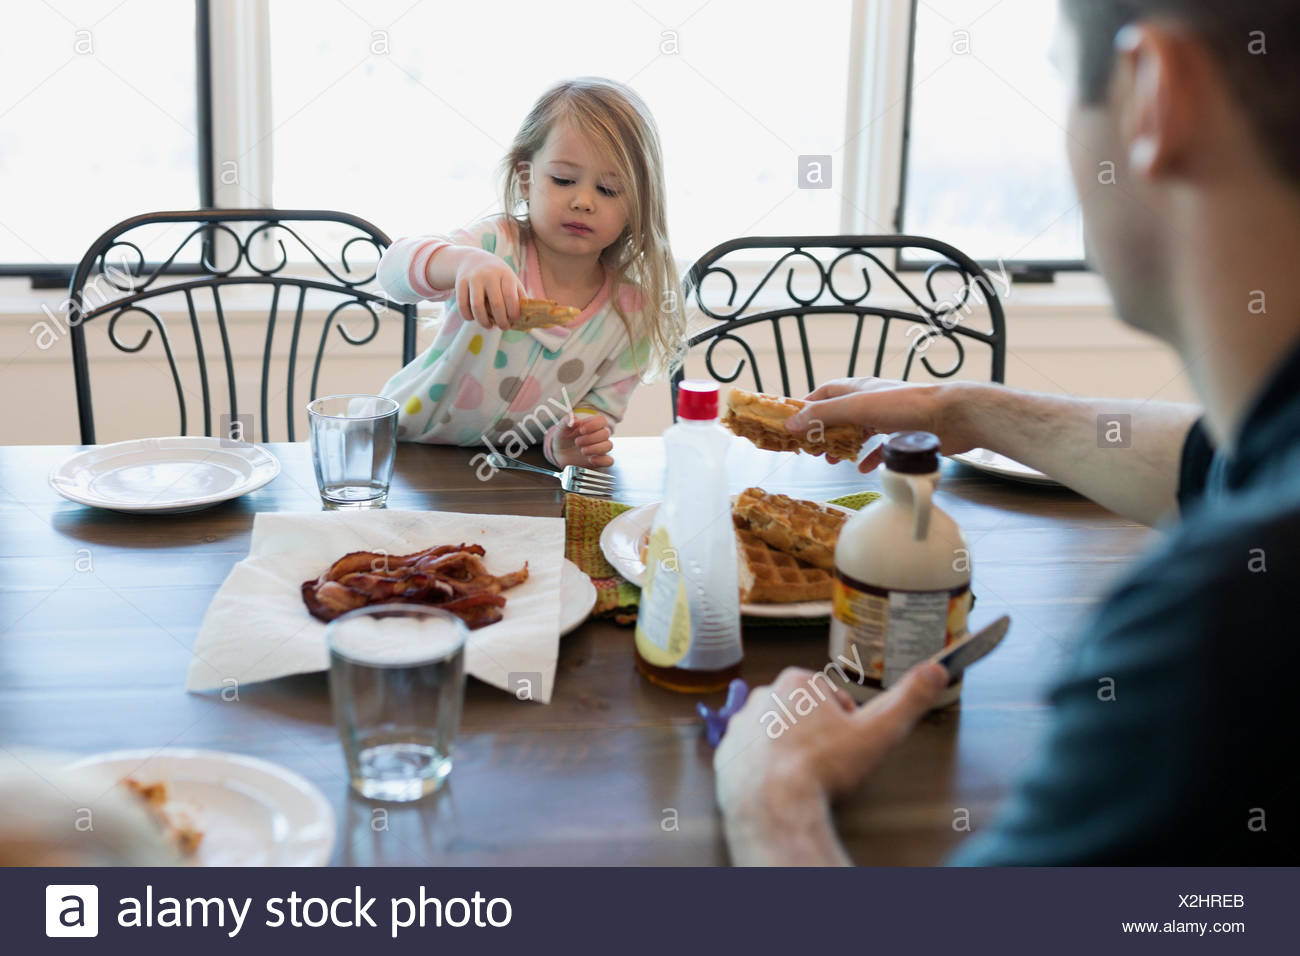 Father and daughter eating waffles at kitchen table - Stock Image